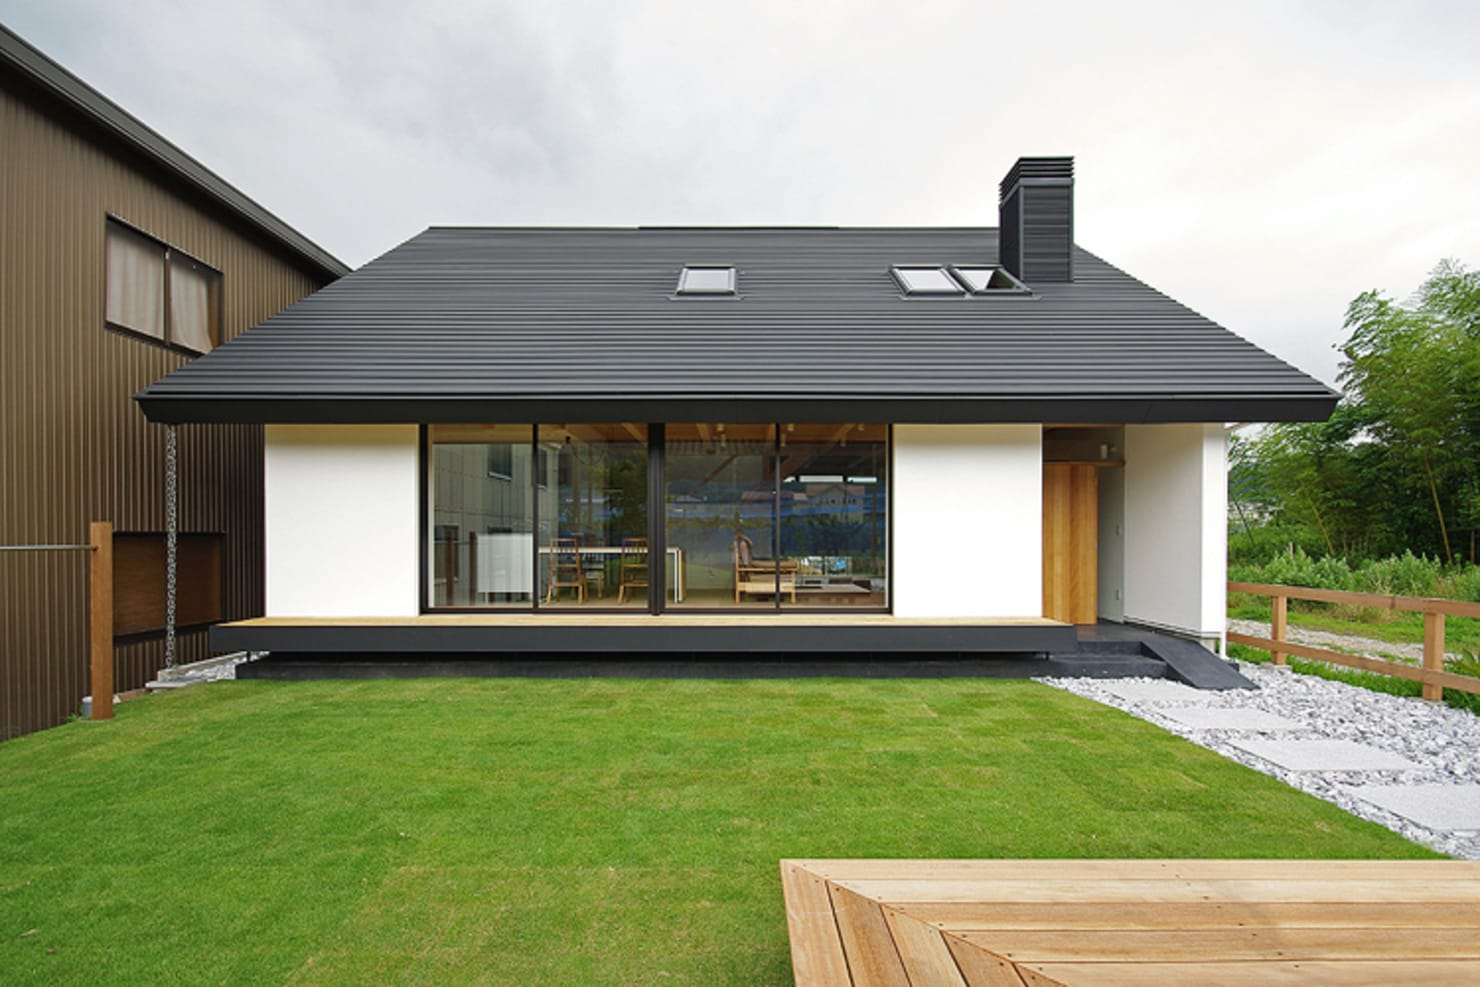 Top 10 most popular one-level houses of the year